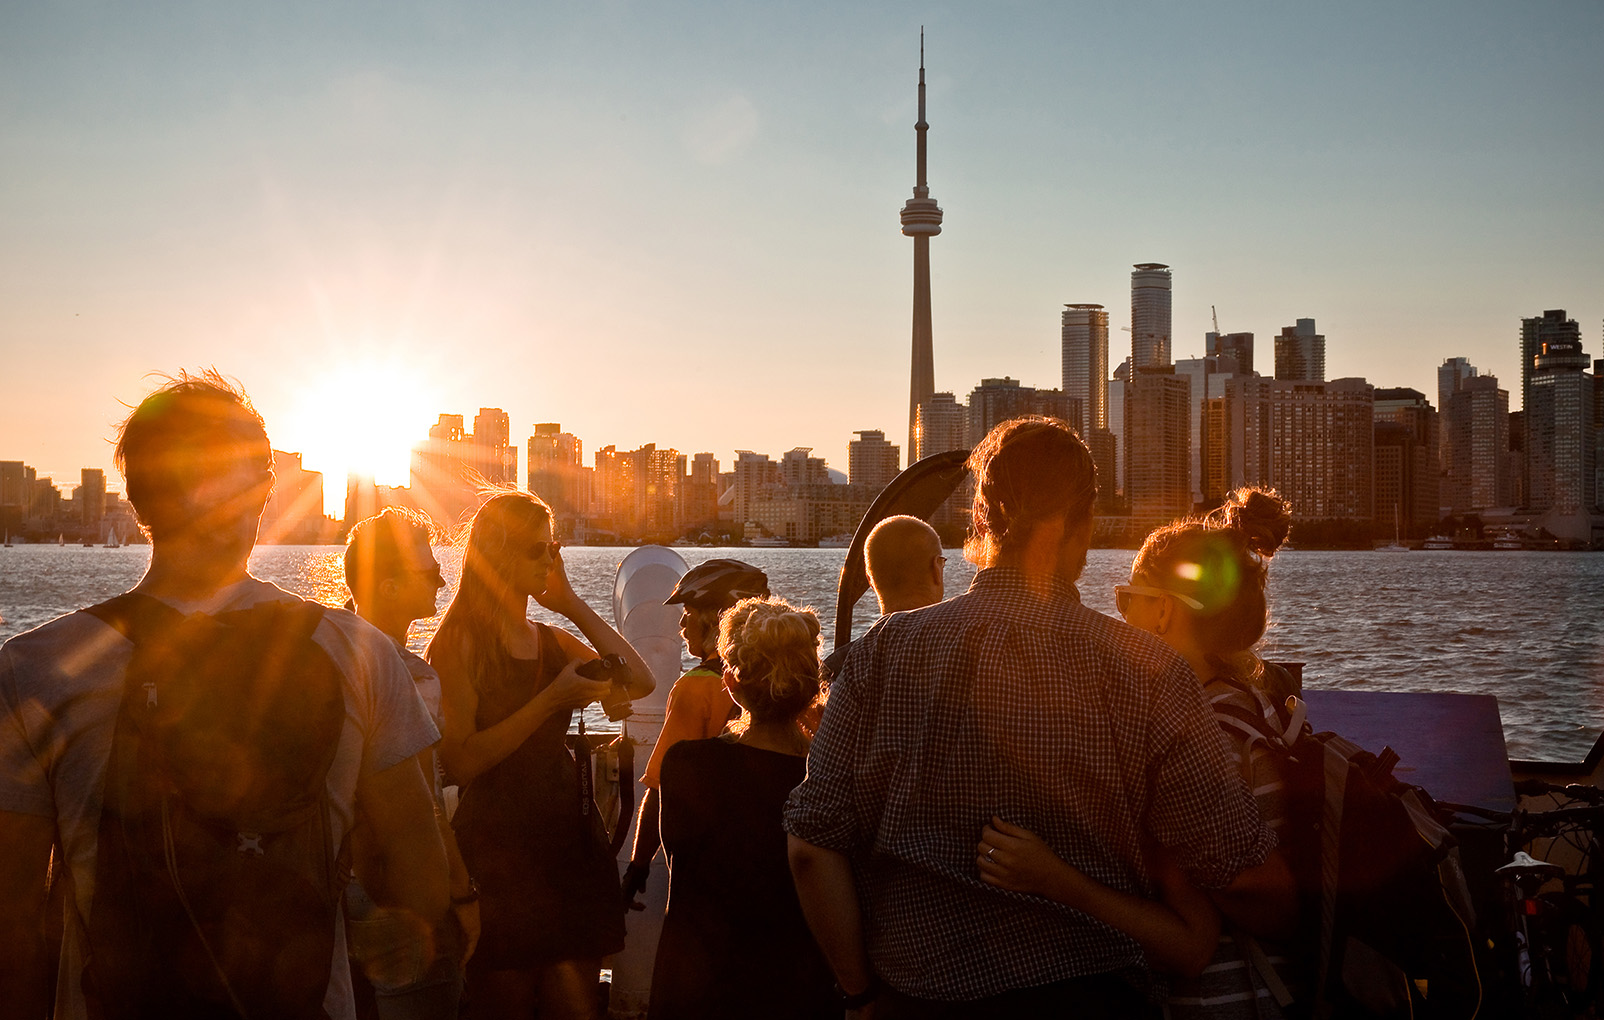 Travelers look at the CN tower in Toronto, aboard a boat closeby, with the sun beaming in the background.